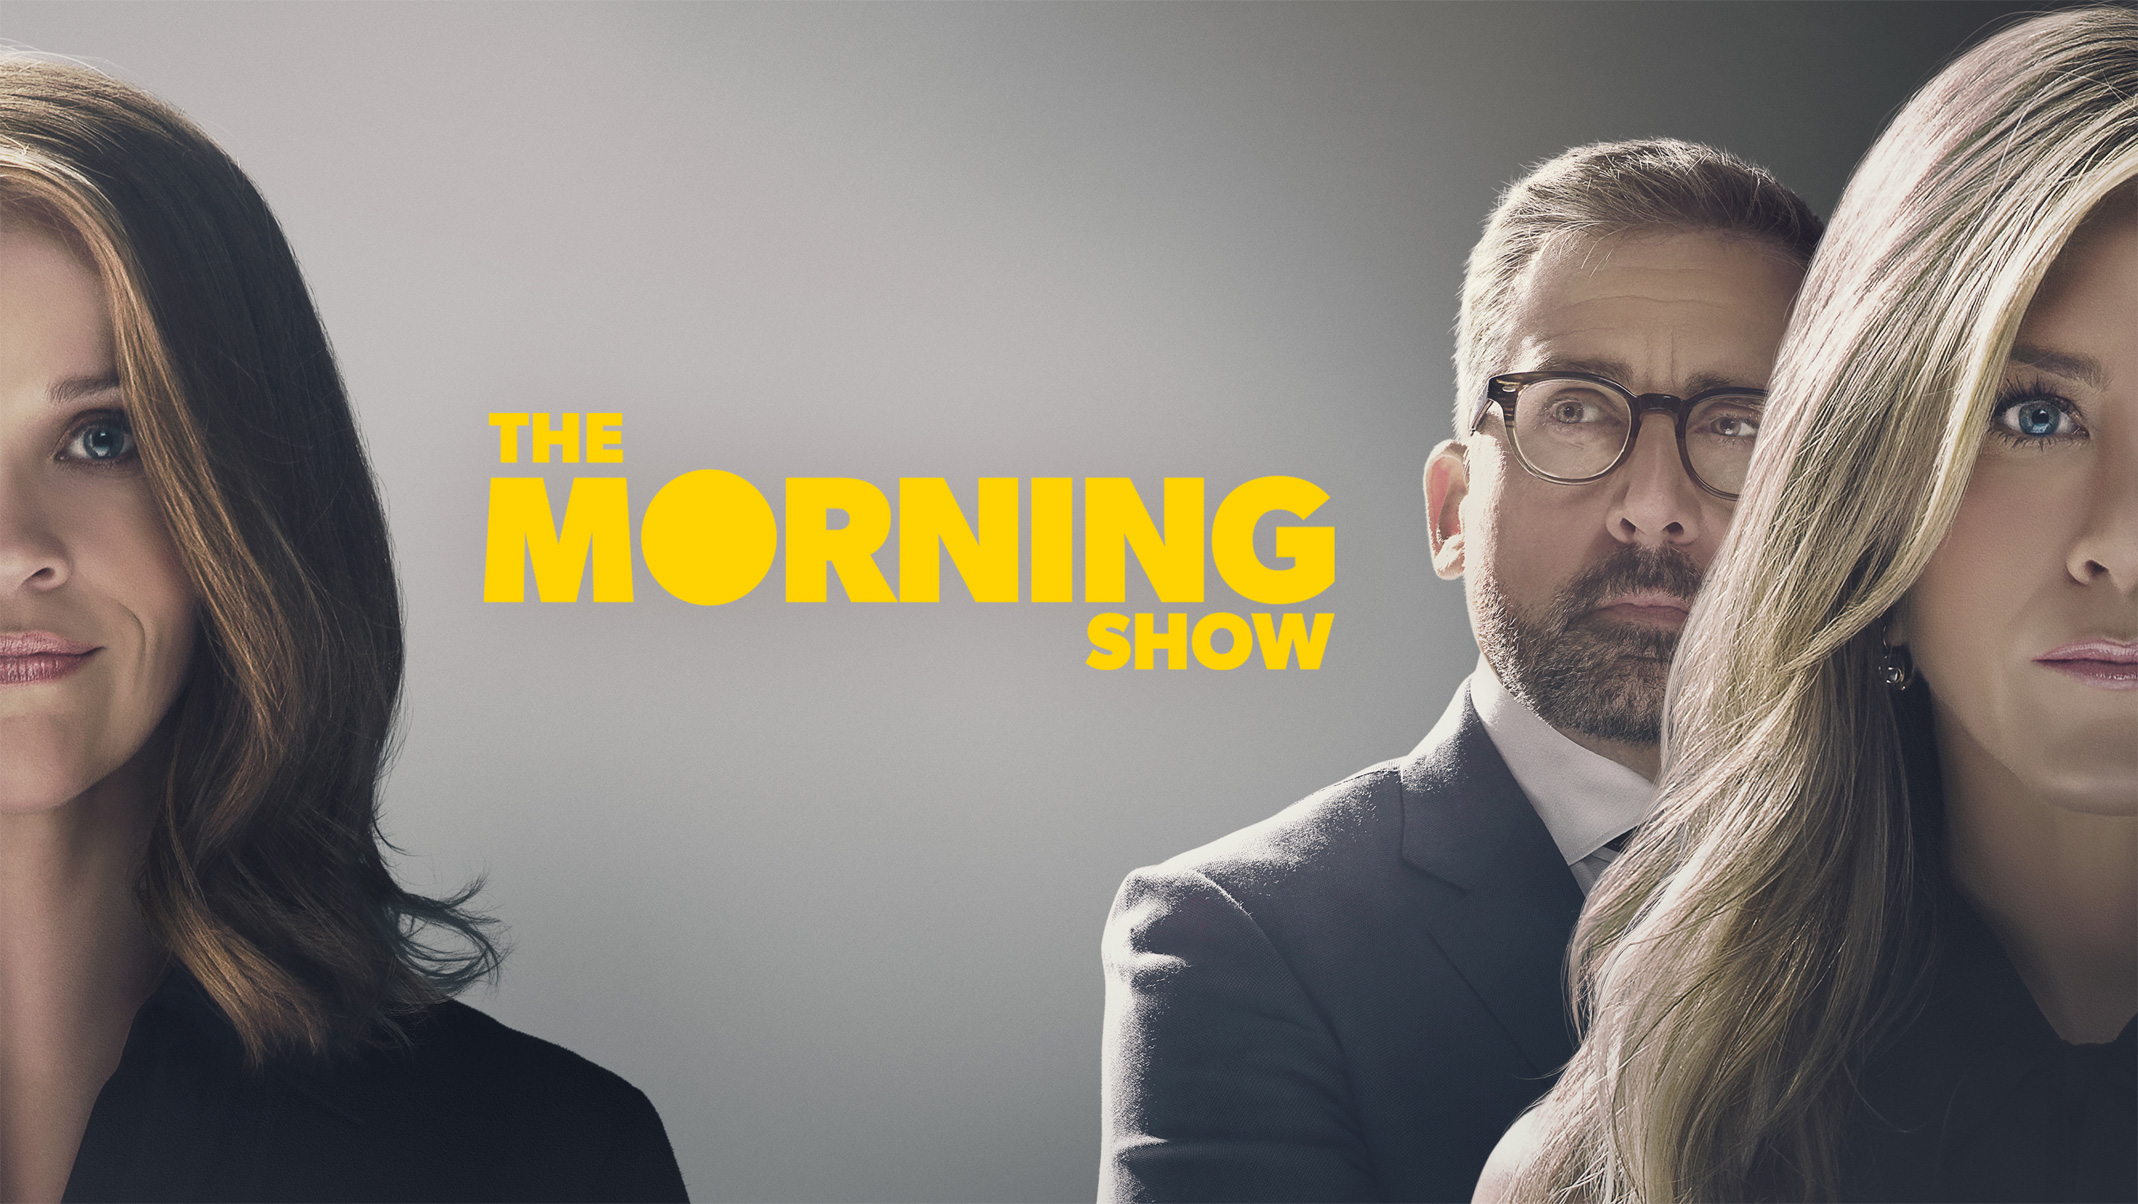 The Morning Show